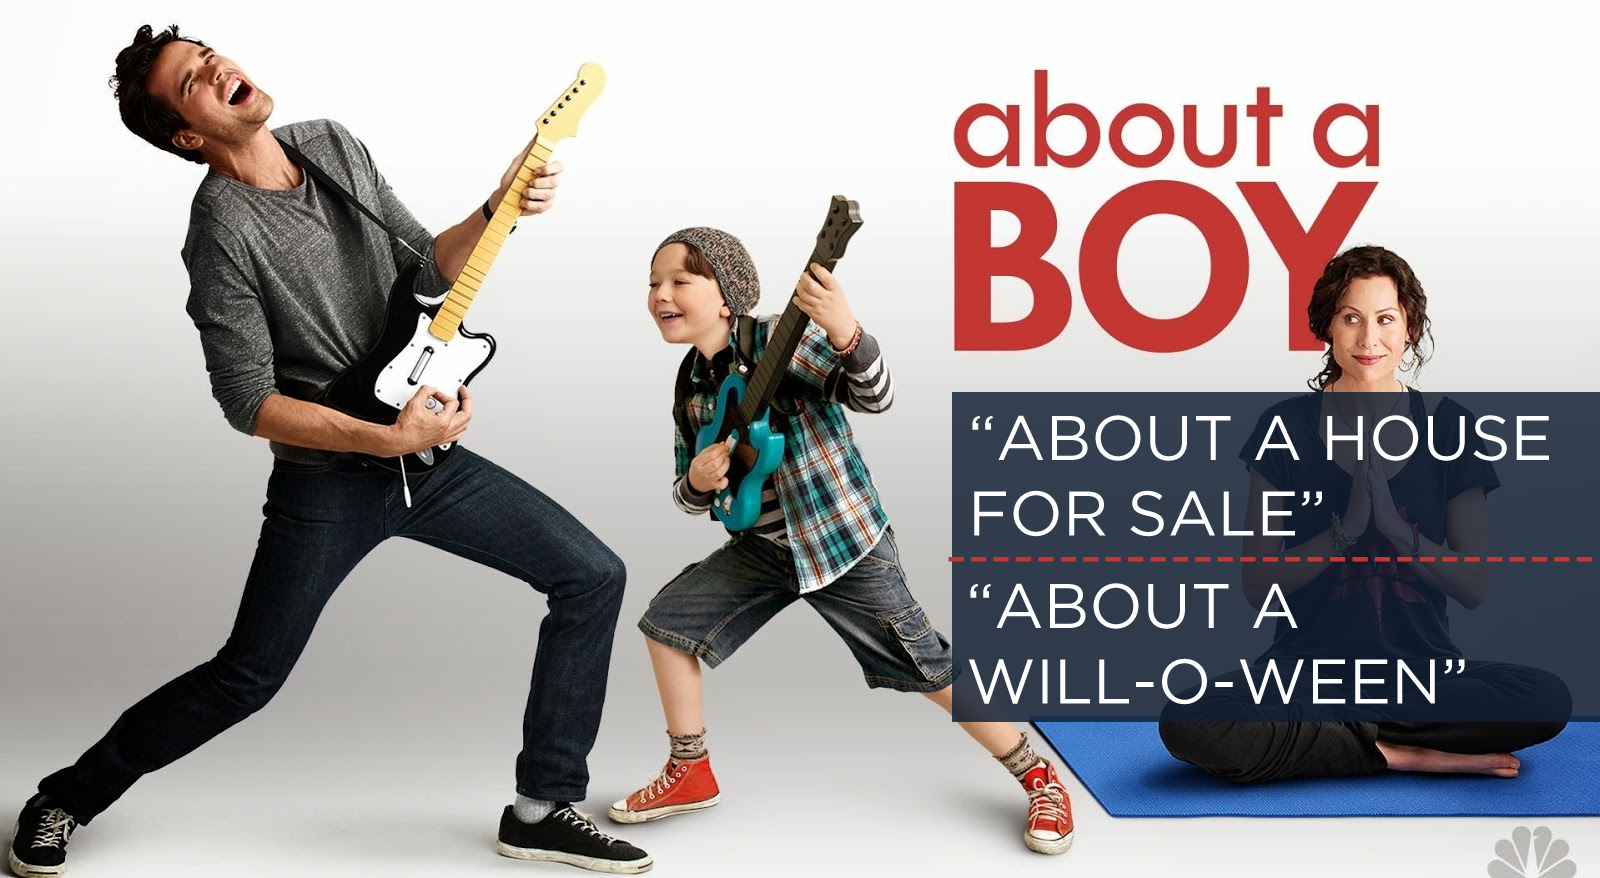 About a Boy - Episode 2.02 & 2.03 - About a House for Sale & About a Will-O-Ween - Review